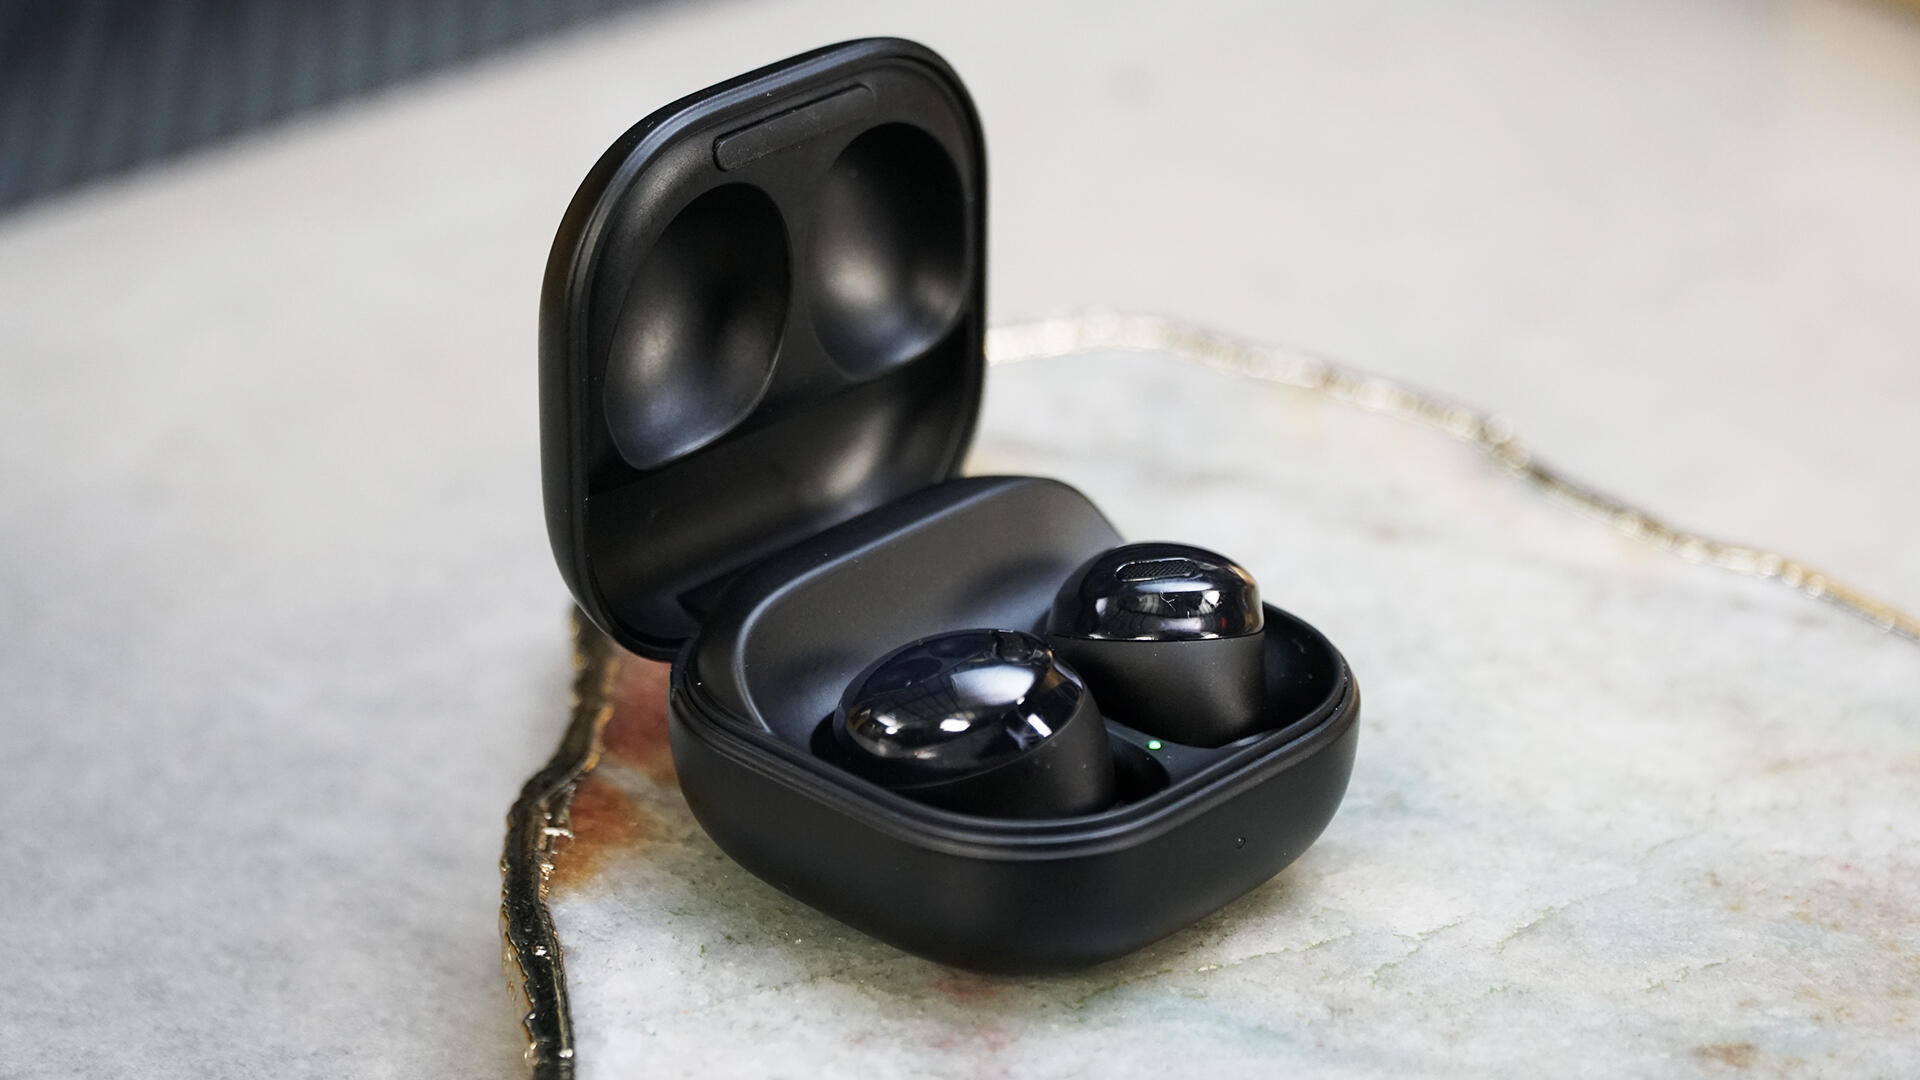 Video: Samsung Galaxy Buds Pro have totally new design